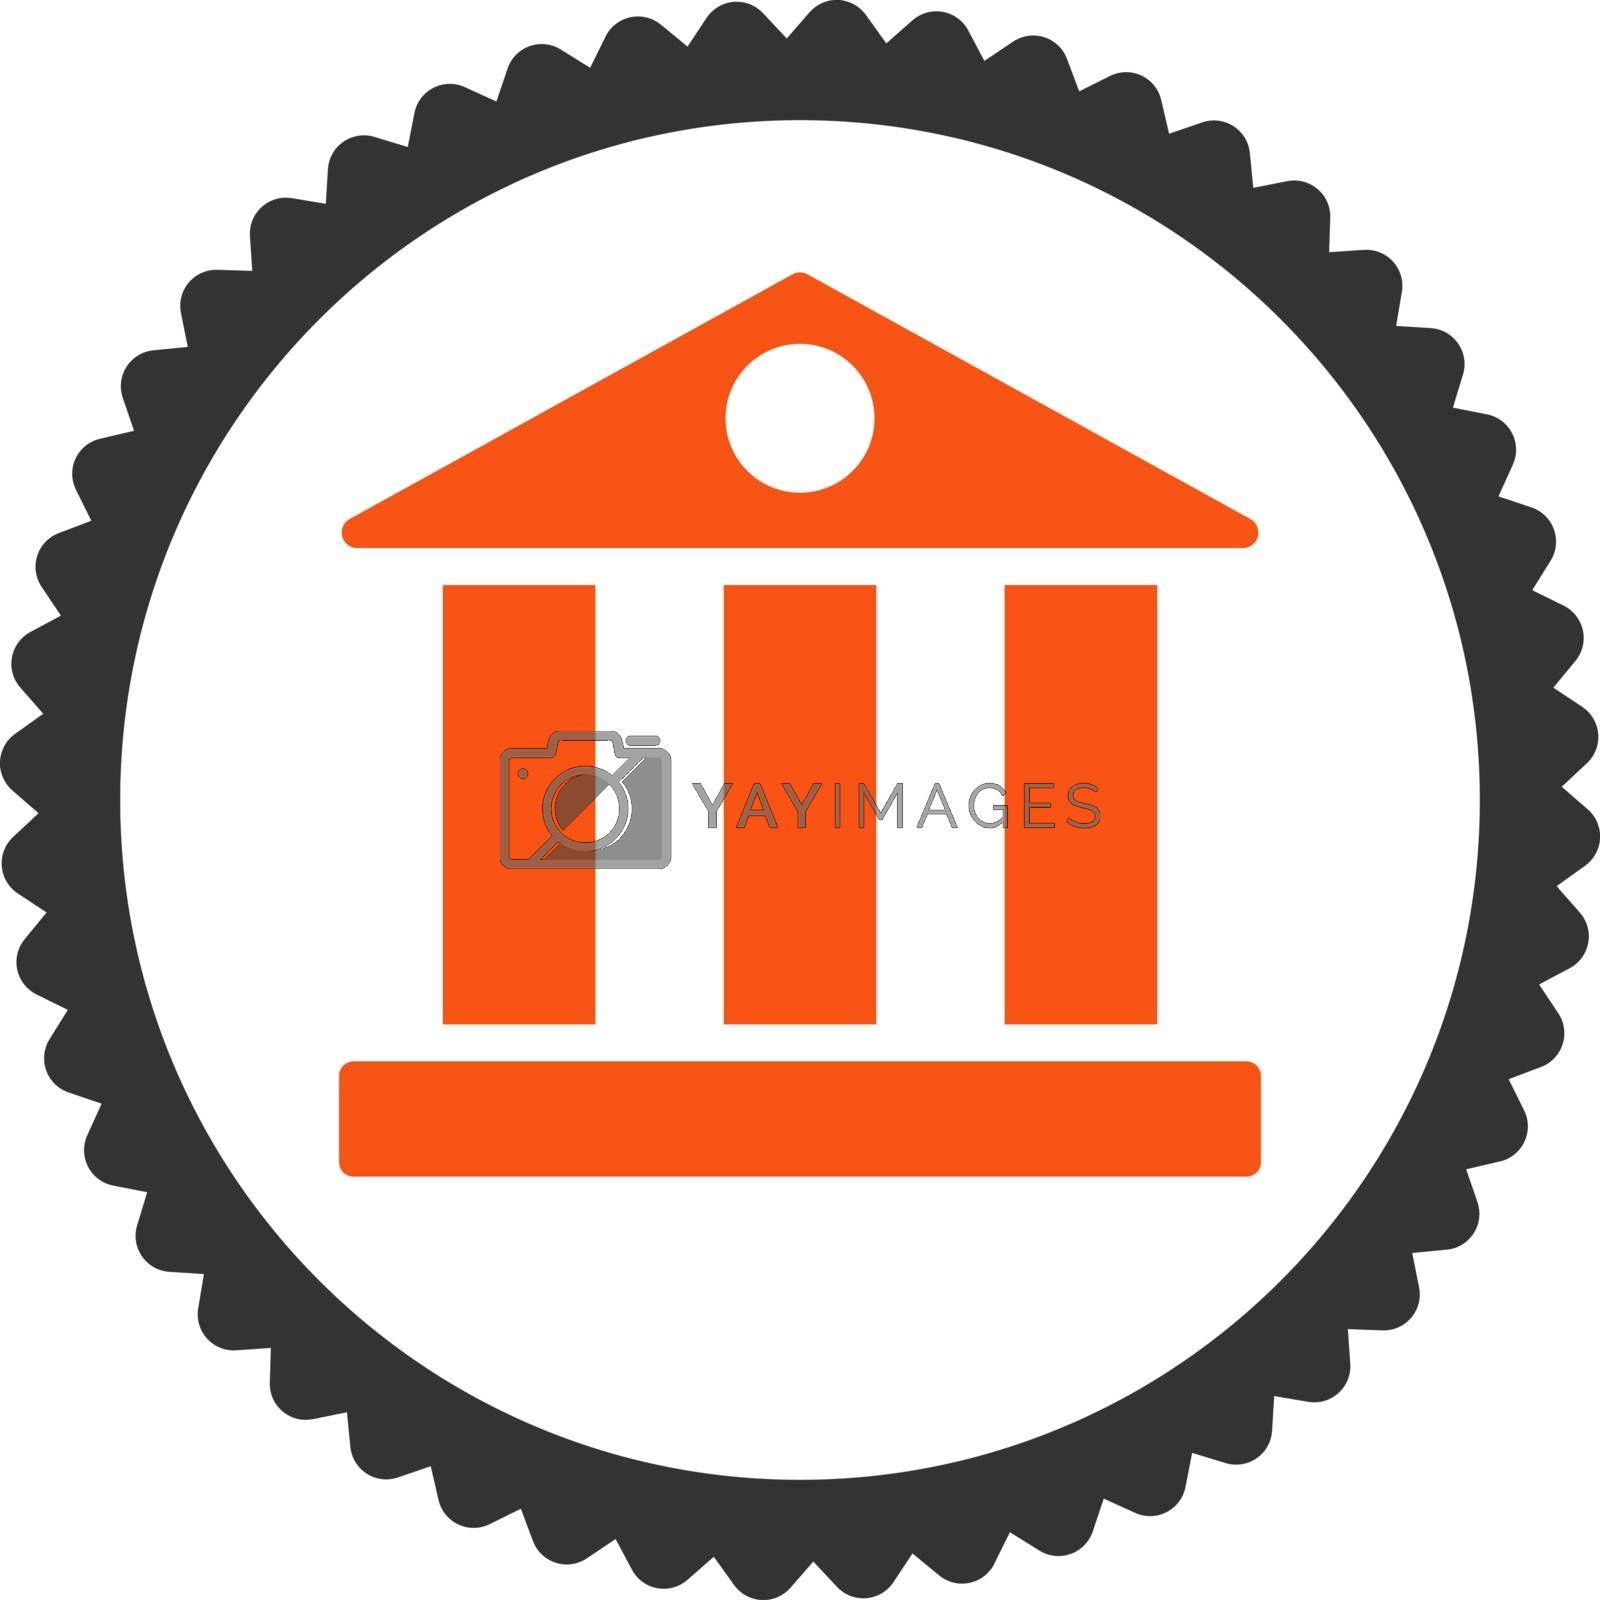 Bank flat orange and gray colors round stamp icon by Aha-Soft